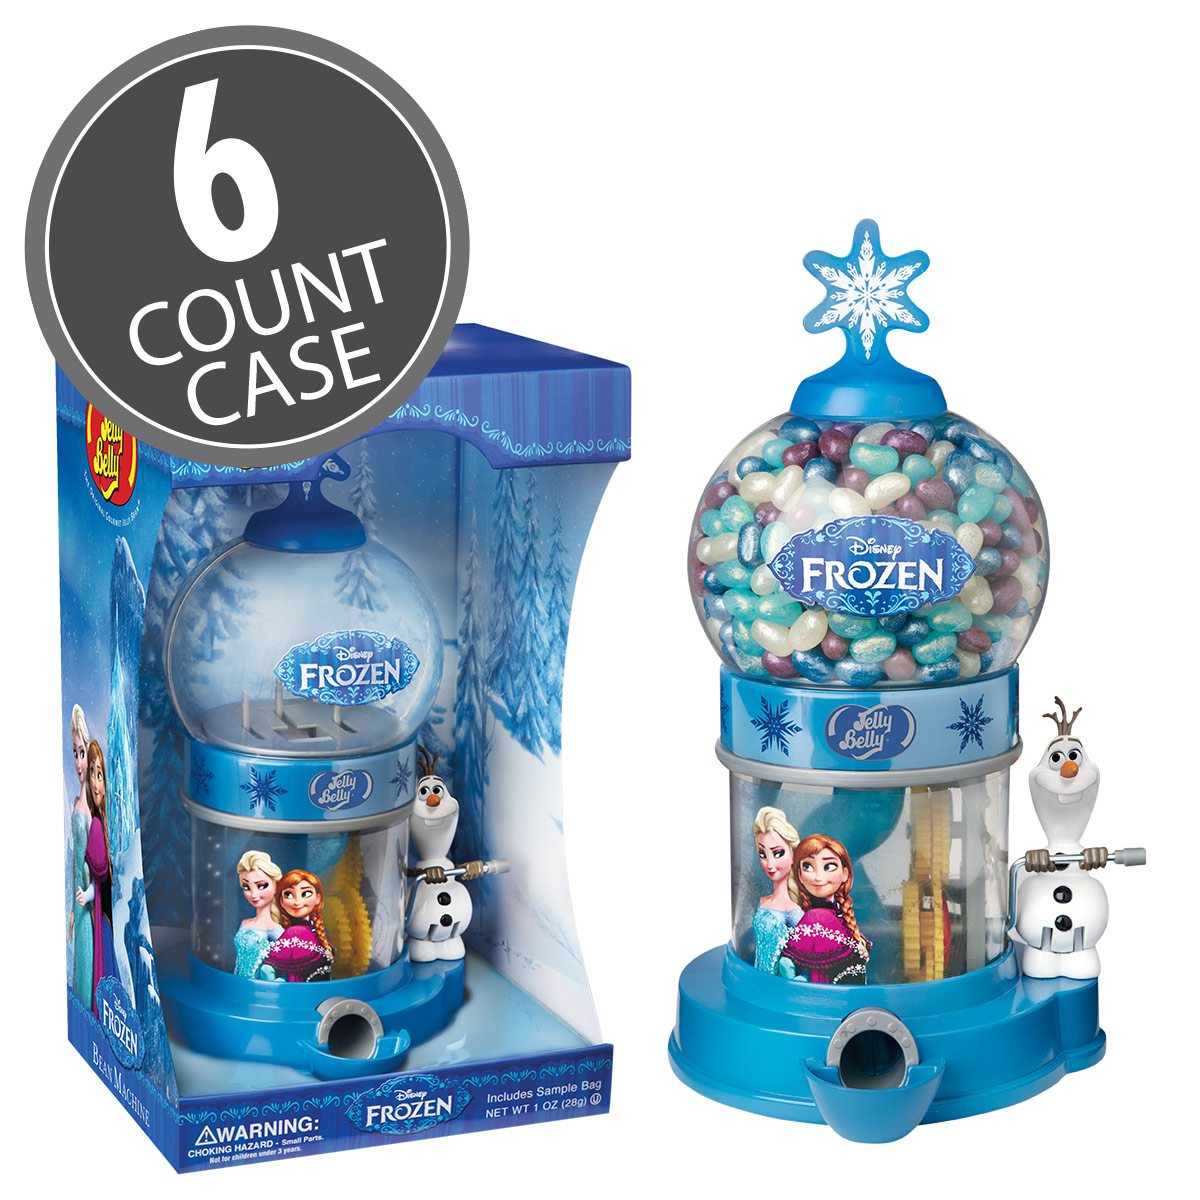 Disney© FROZEN Bean Machine - 6 Count Case